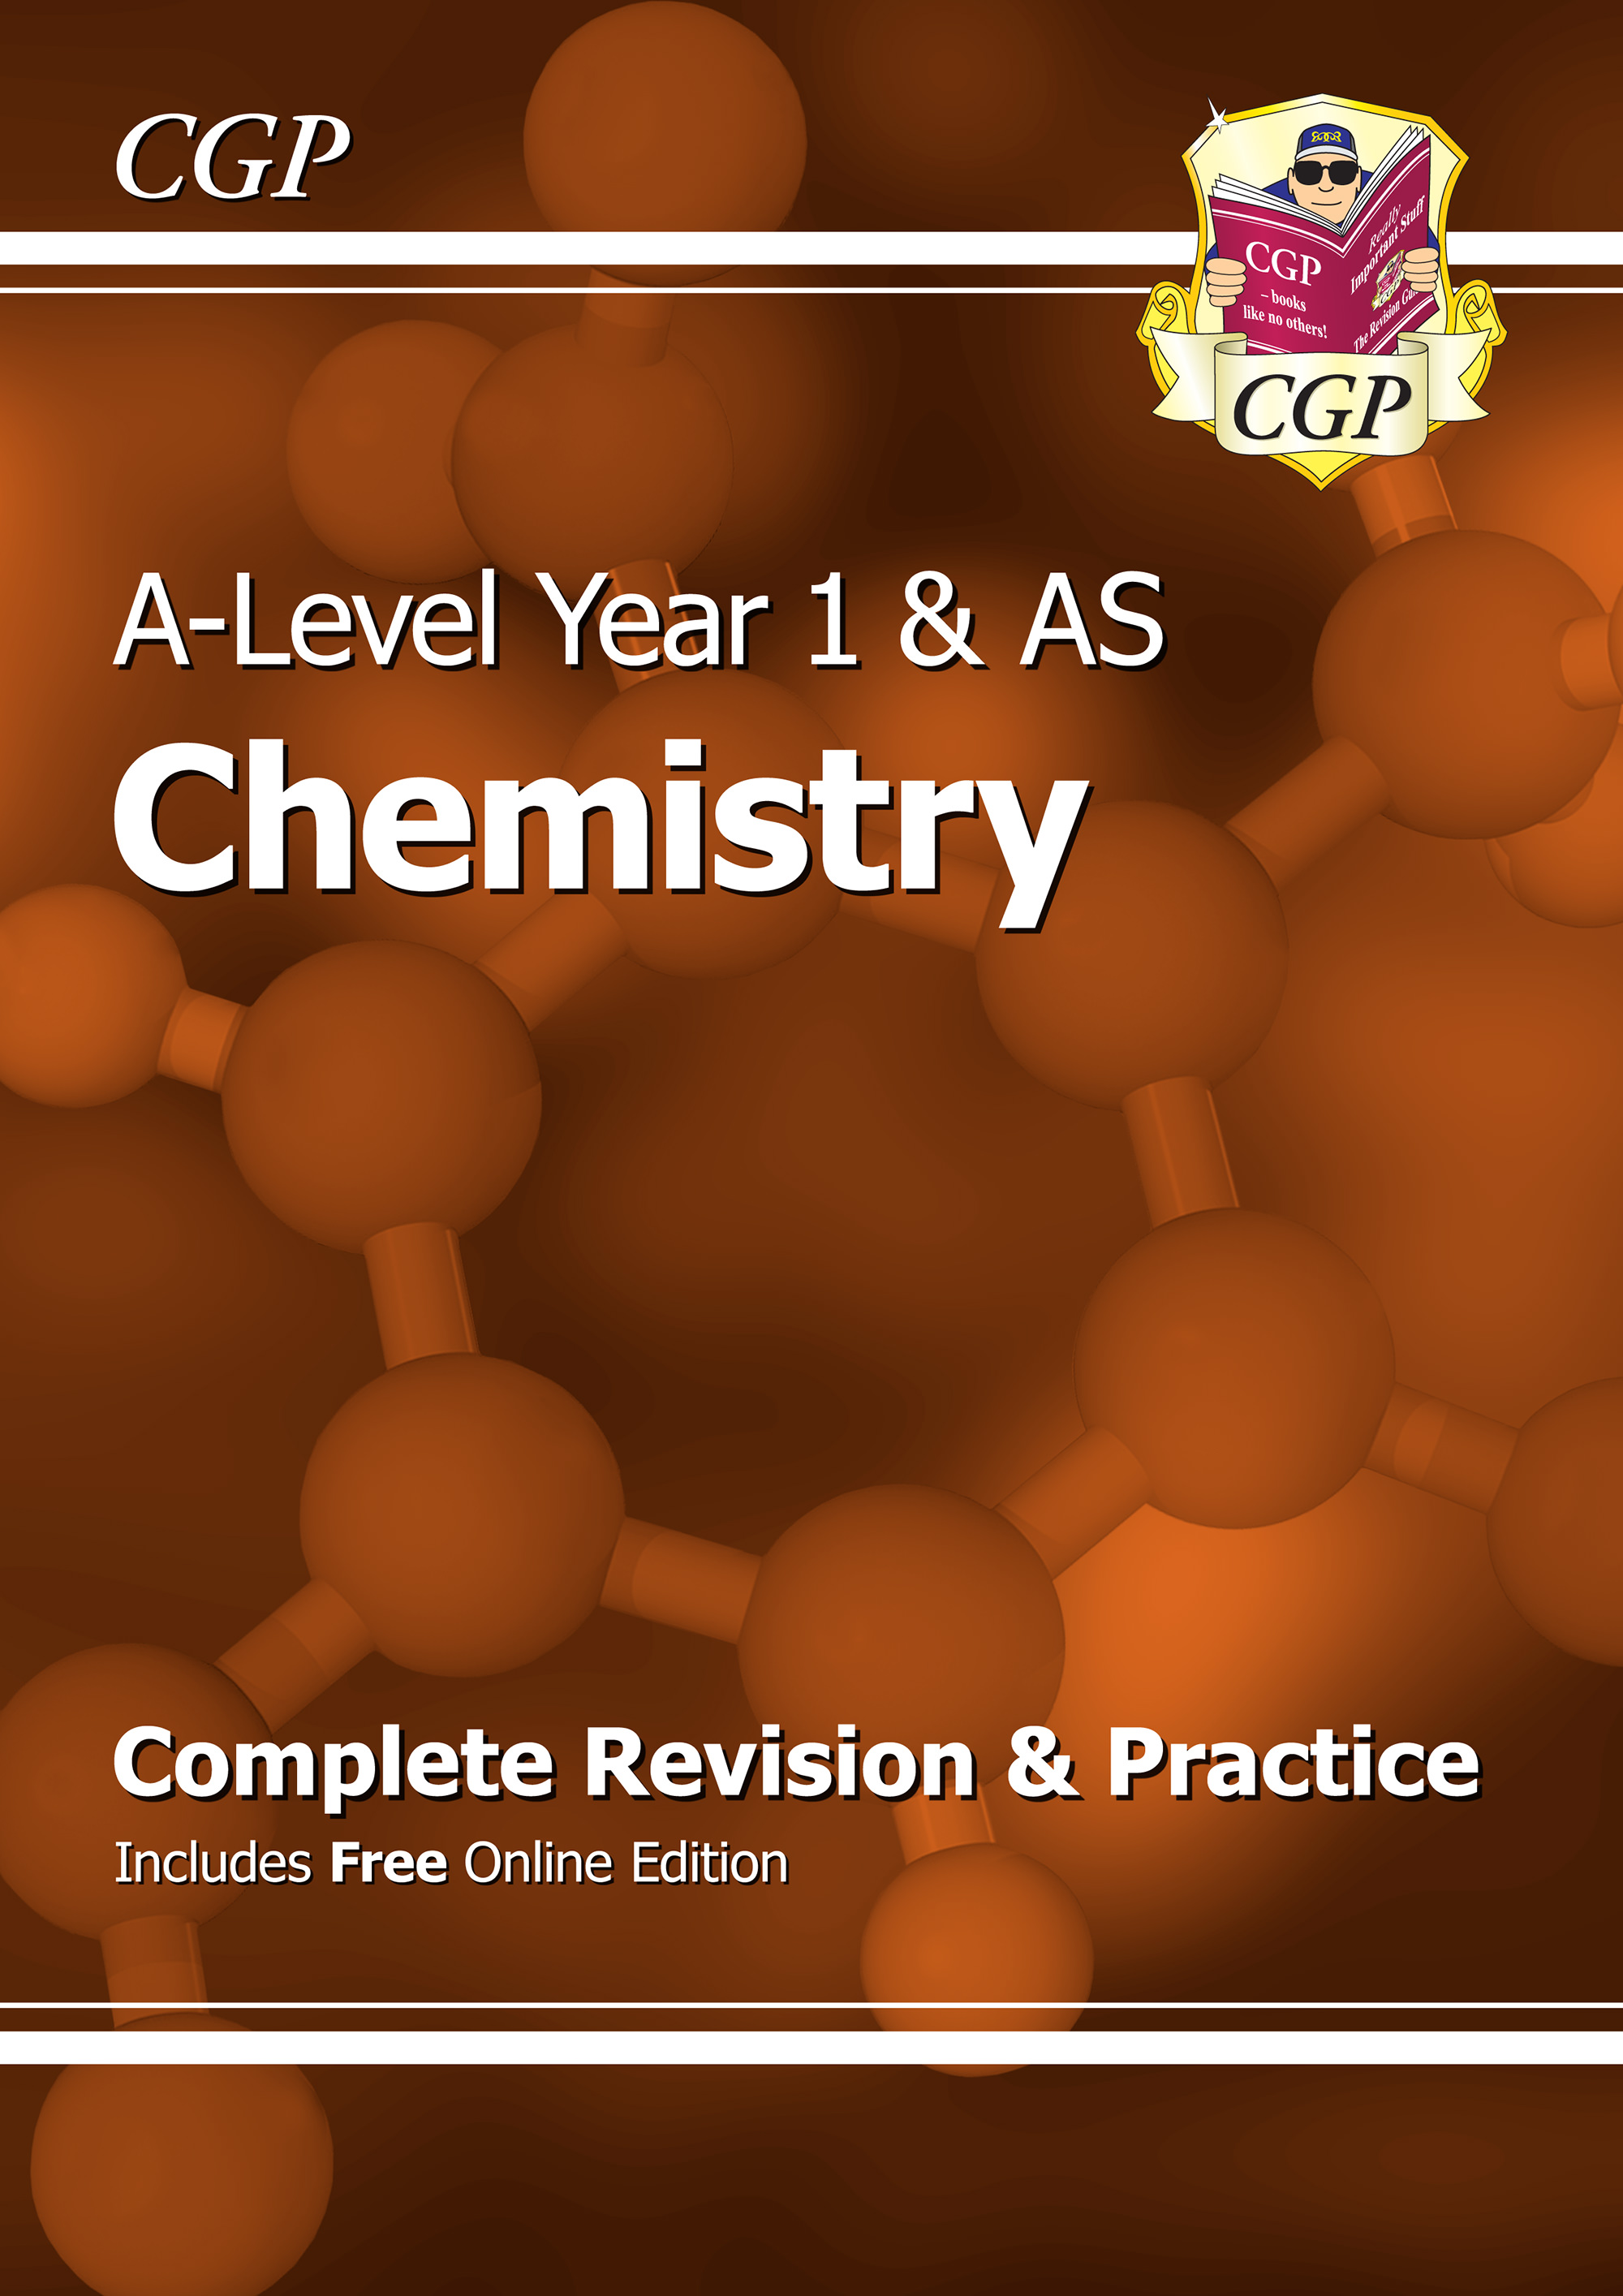 CHR54 - A-Level Chemistry: Year 1 & AS Complete Revision & Practice with Online Edition